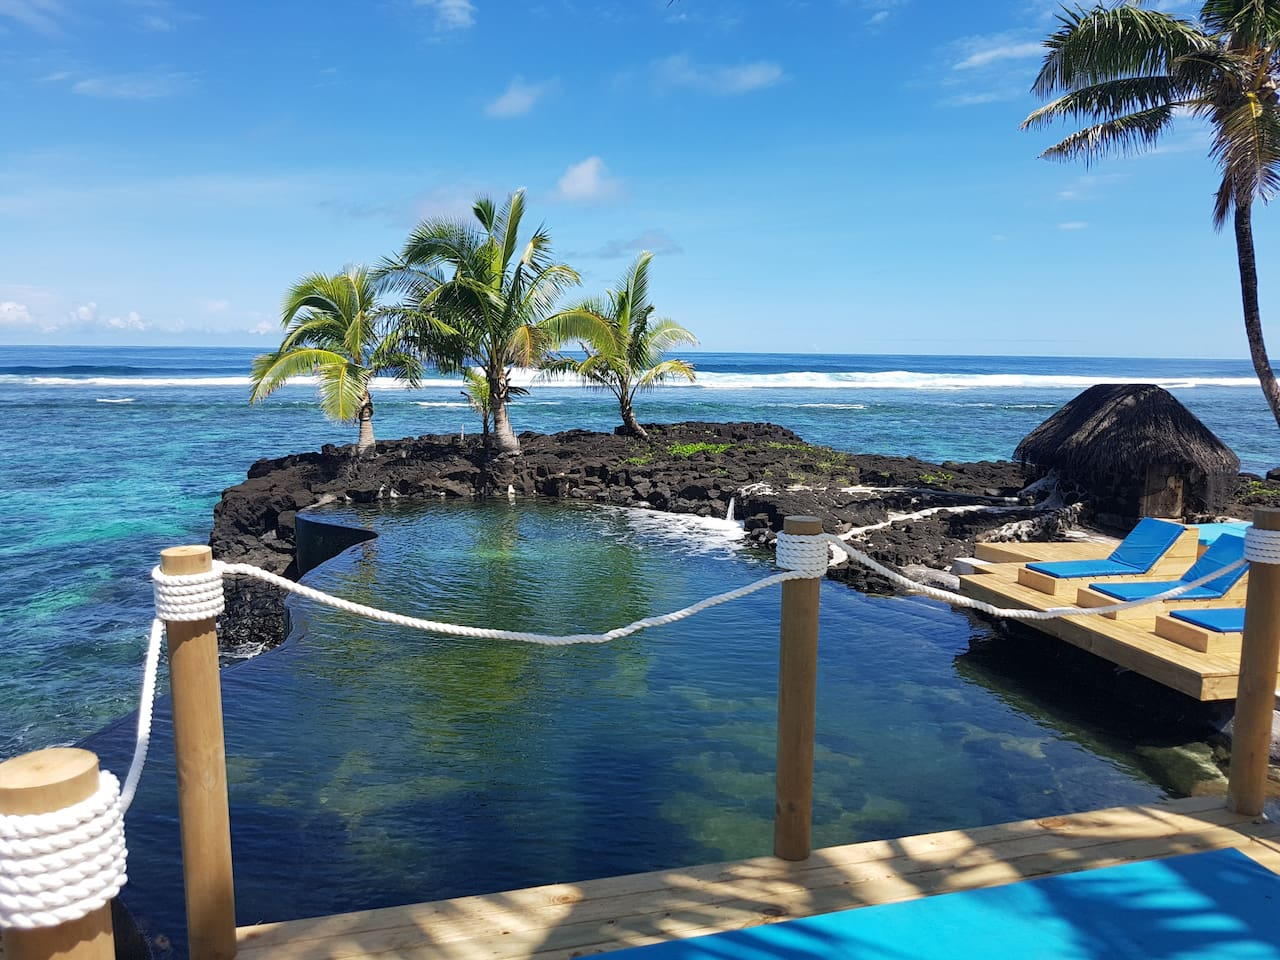 Our Ocean water infinity pool with comfy daybeds for relaxation and a cool down.